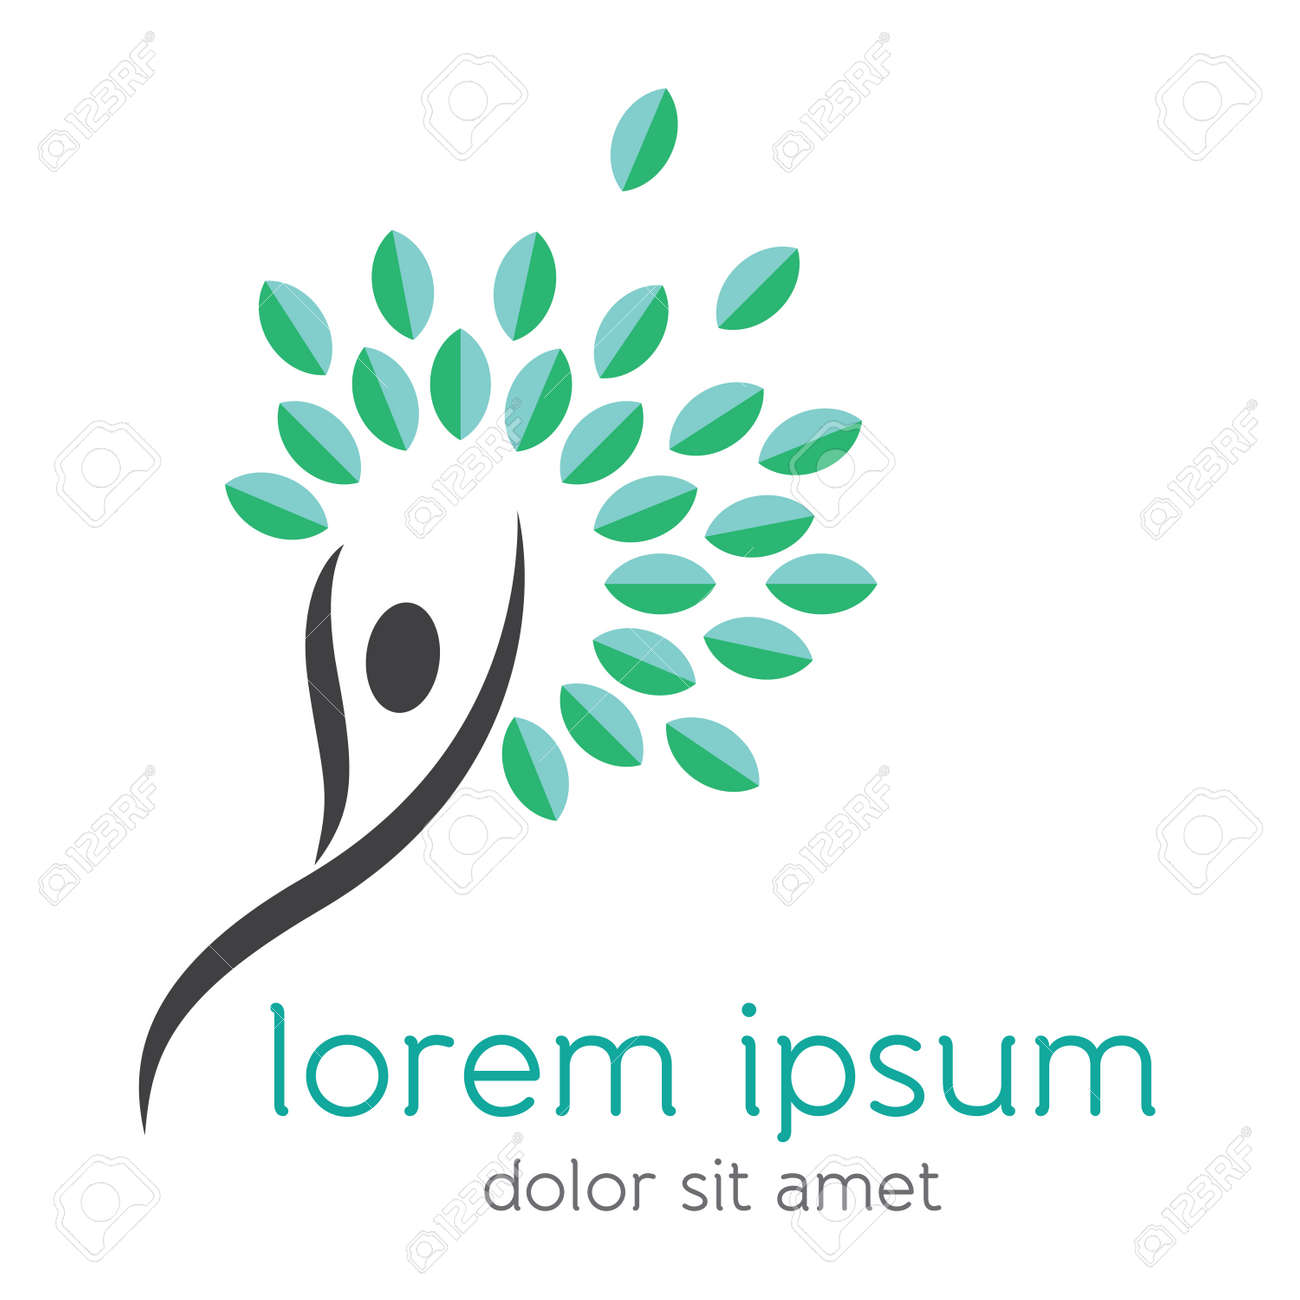 Abstract happy human body icon with flourishing fresh leaves, ecology, nature, environment and healthy lifestyle concept vector design element Stock Vector - 62996644